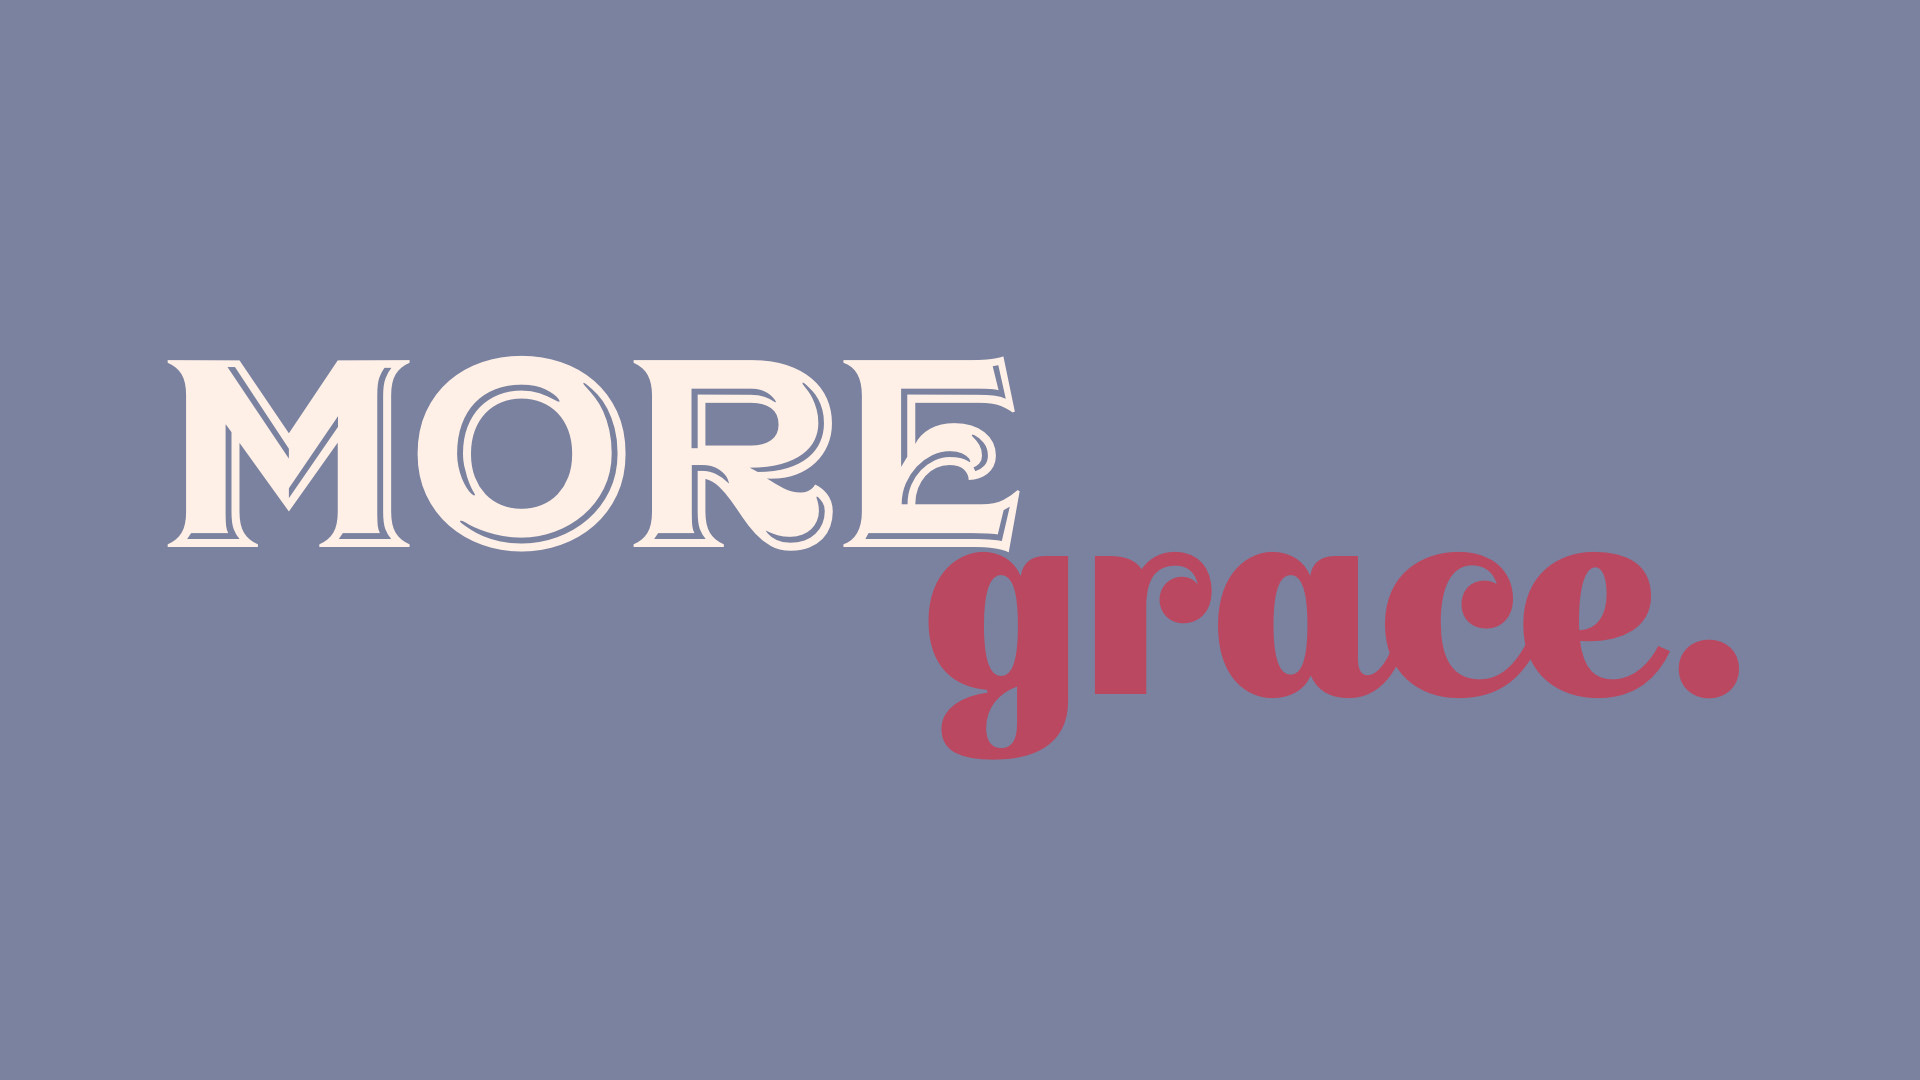 You need more grace, just not in the way you expect it.